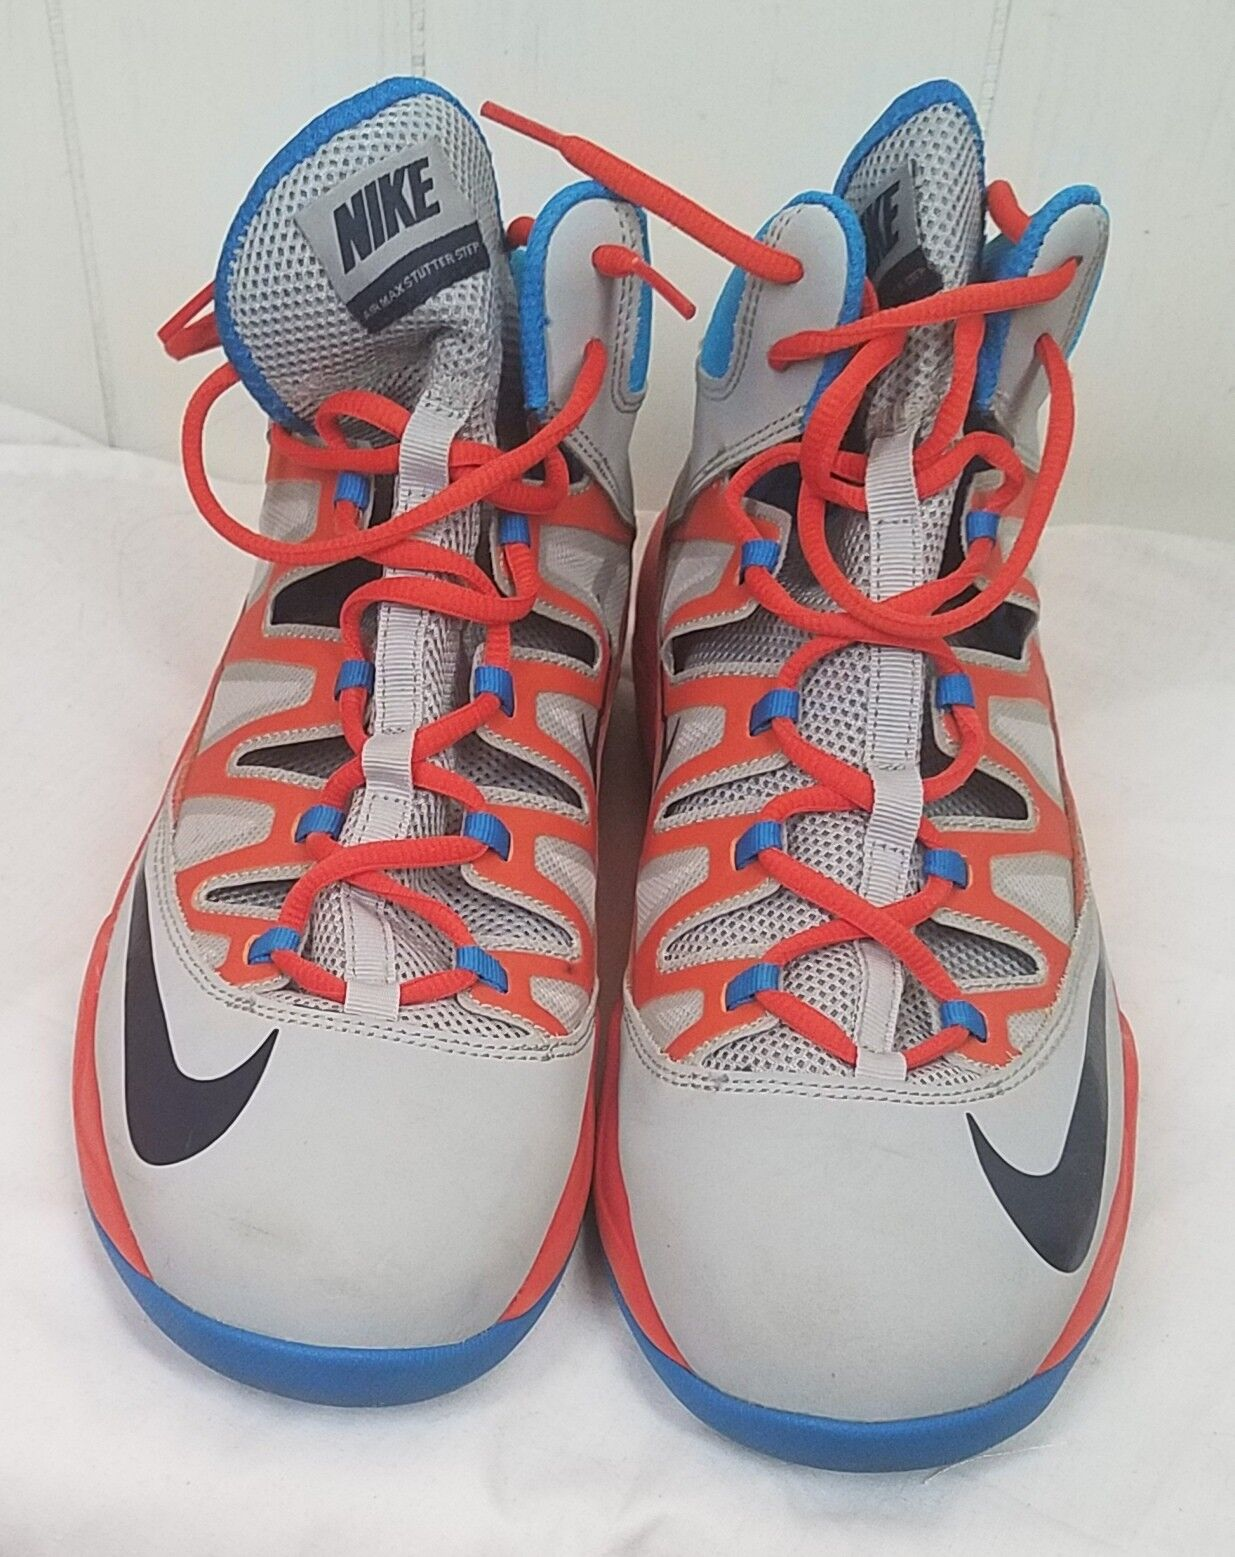 Nike Air Max Stutter Step Men's Basketball Shoes